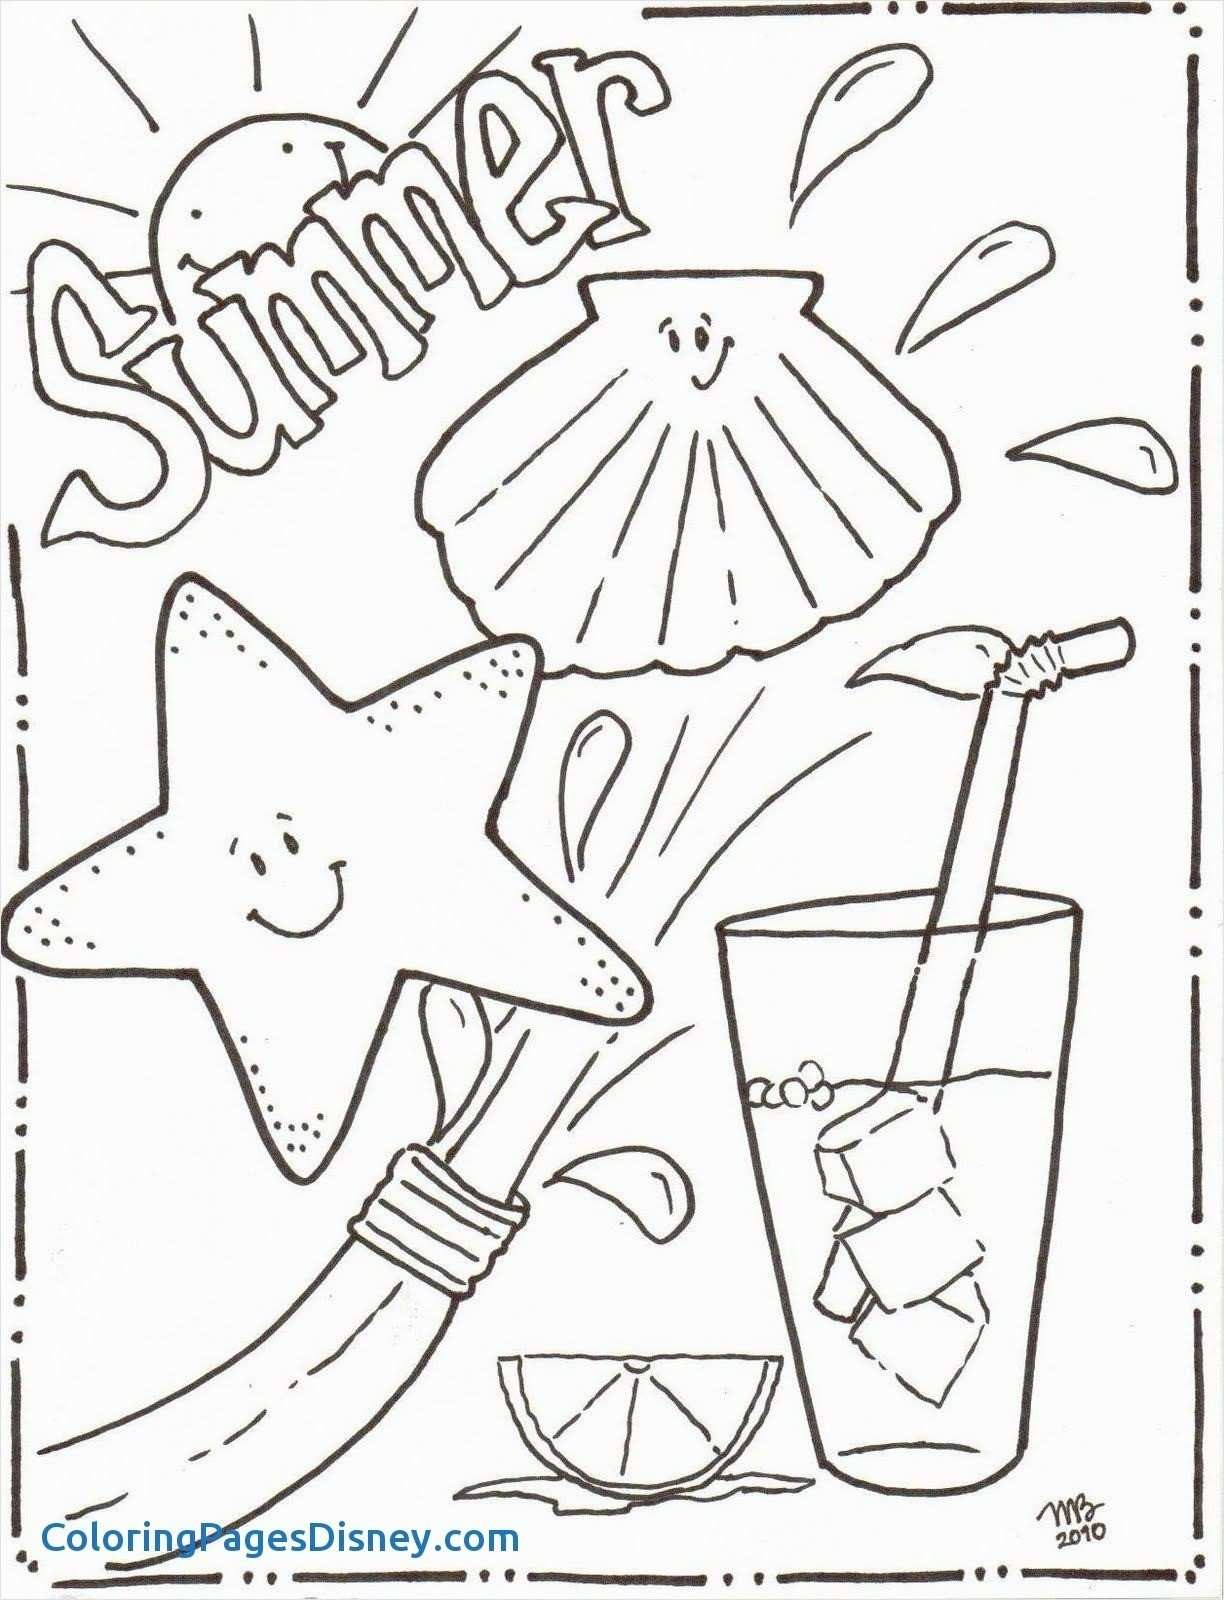 Lisa Frank Coloring Pages Anne Frank Coloring Pages Lovely Brain Coloring Page New Lisa Frank